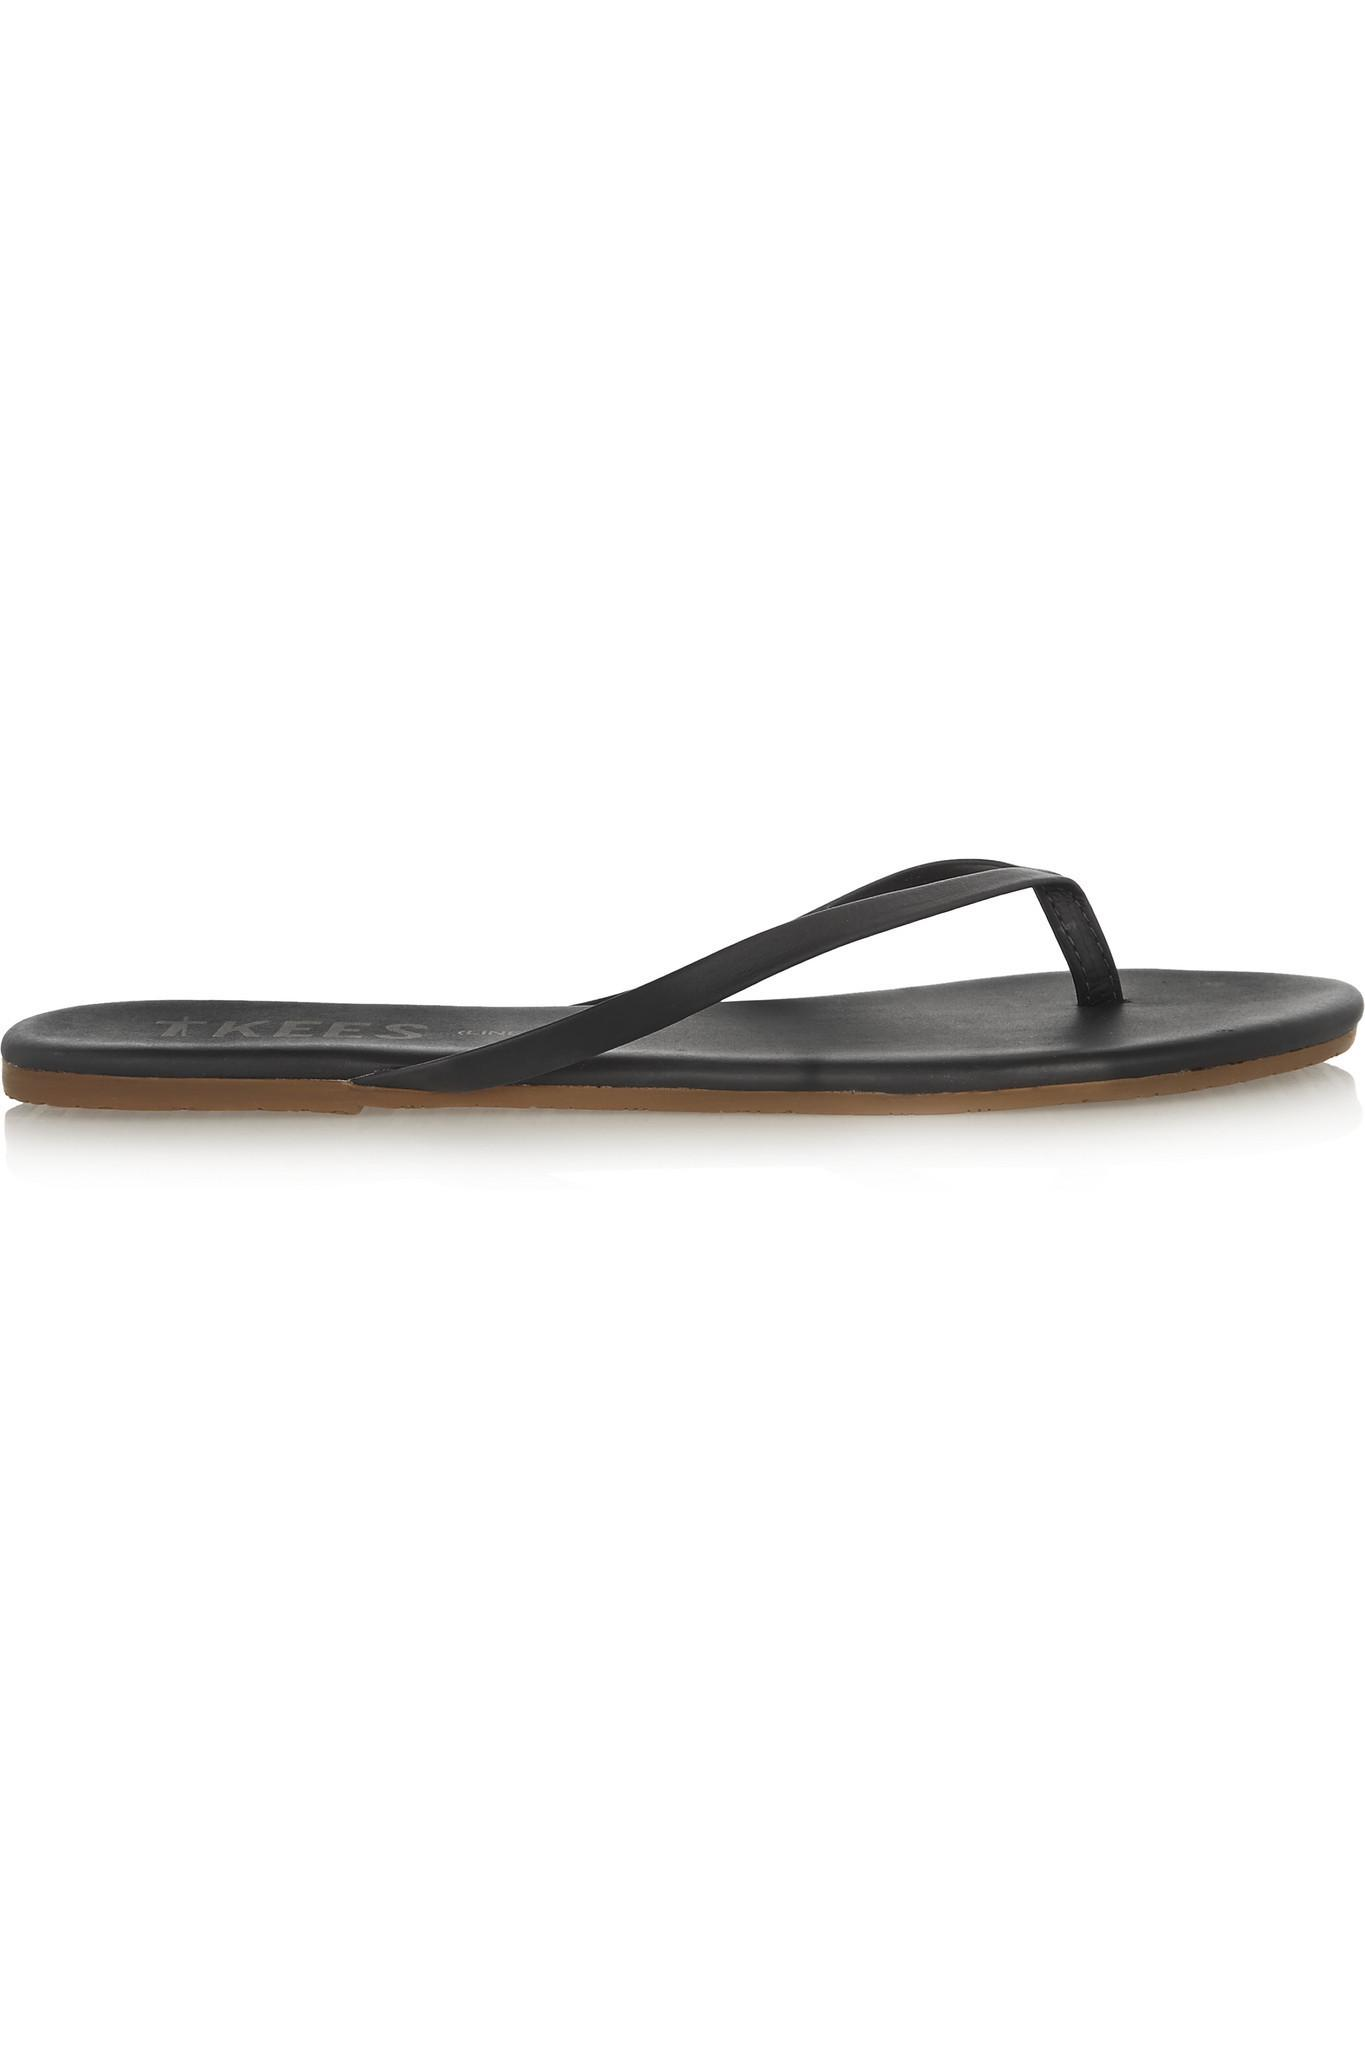 e8e1fcac31de65 TKEES Lily Matte-leather Flip Flop in Black - Save 3% - Lyst